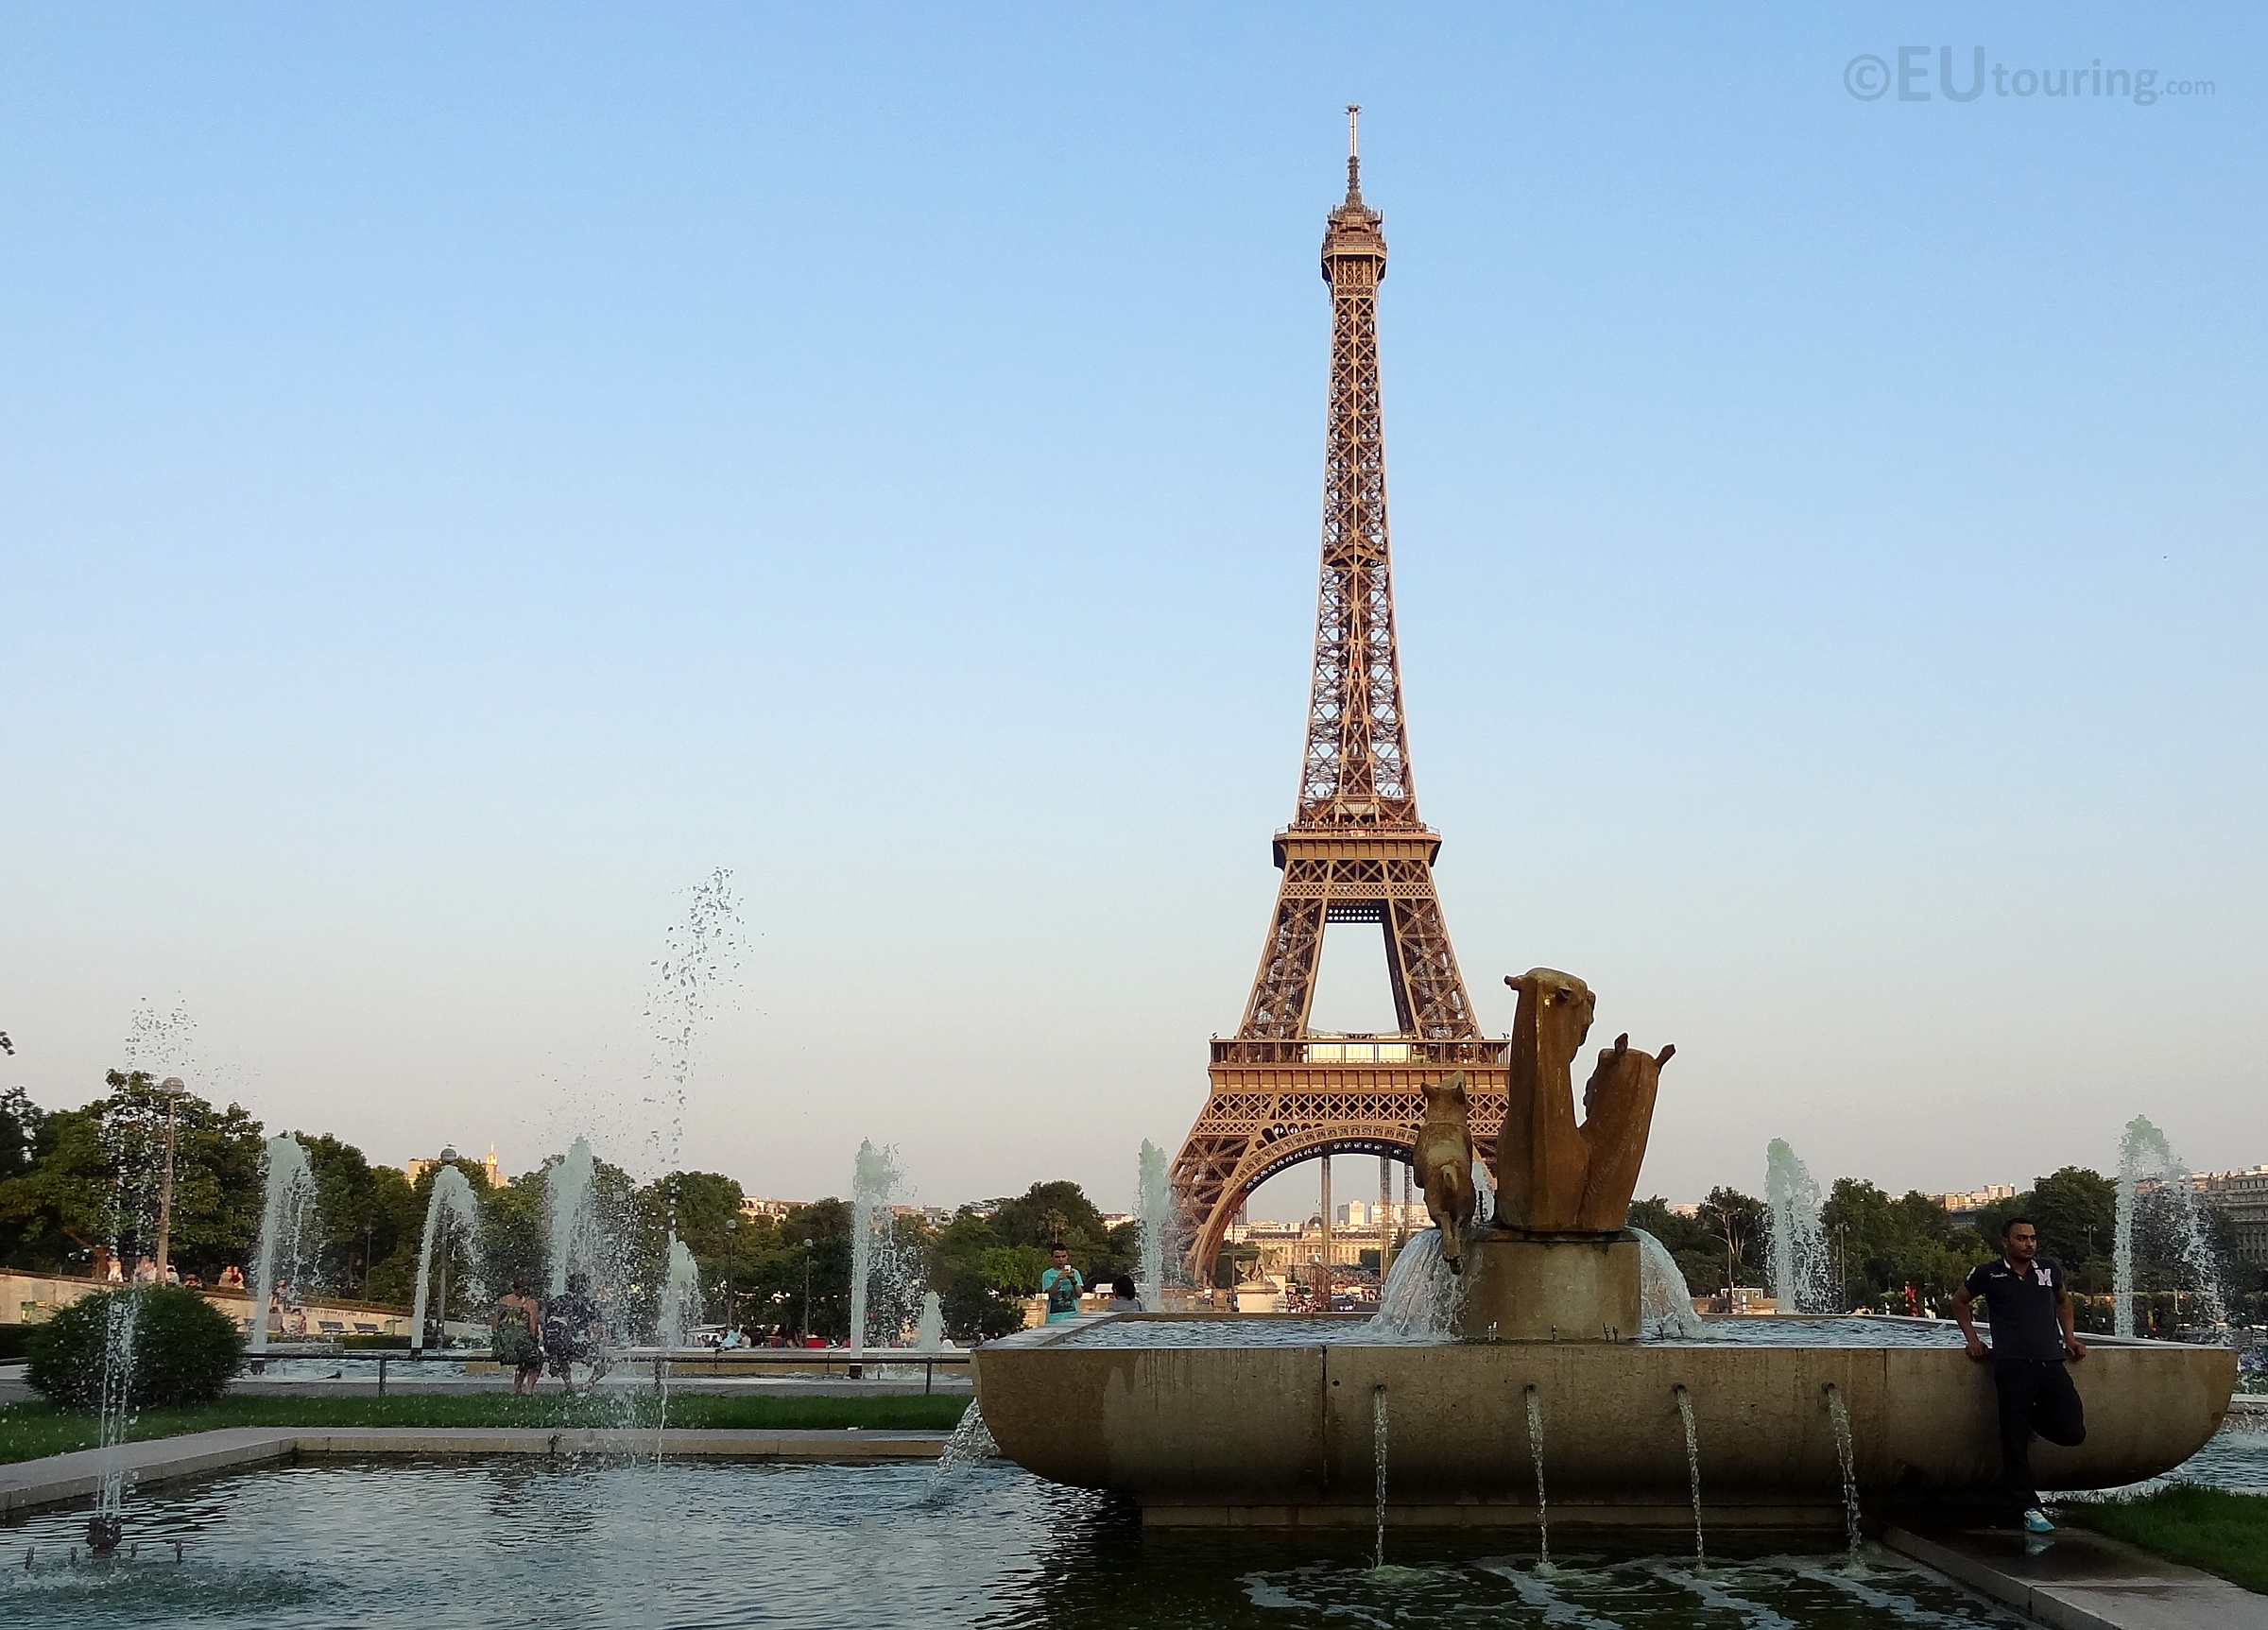 View over Trocadero fountains